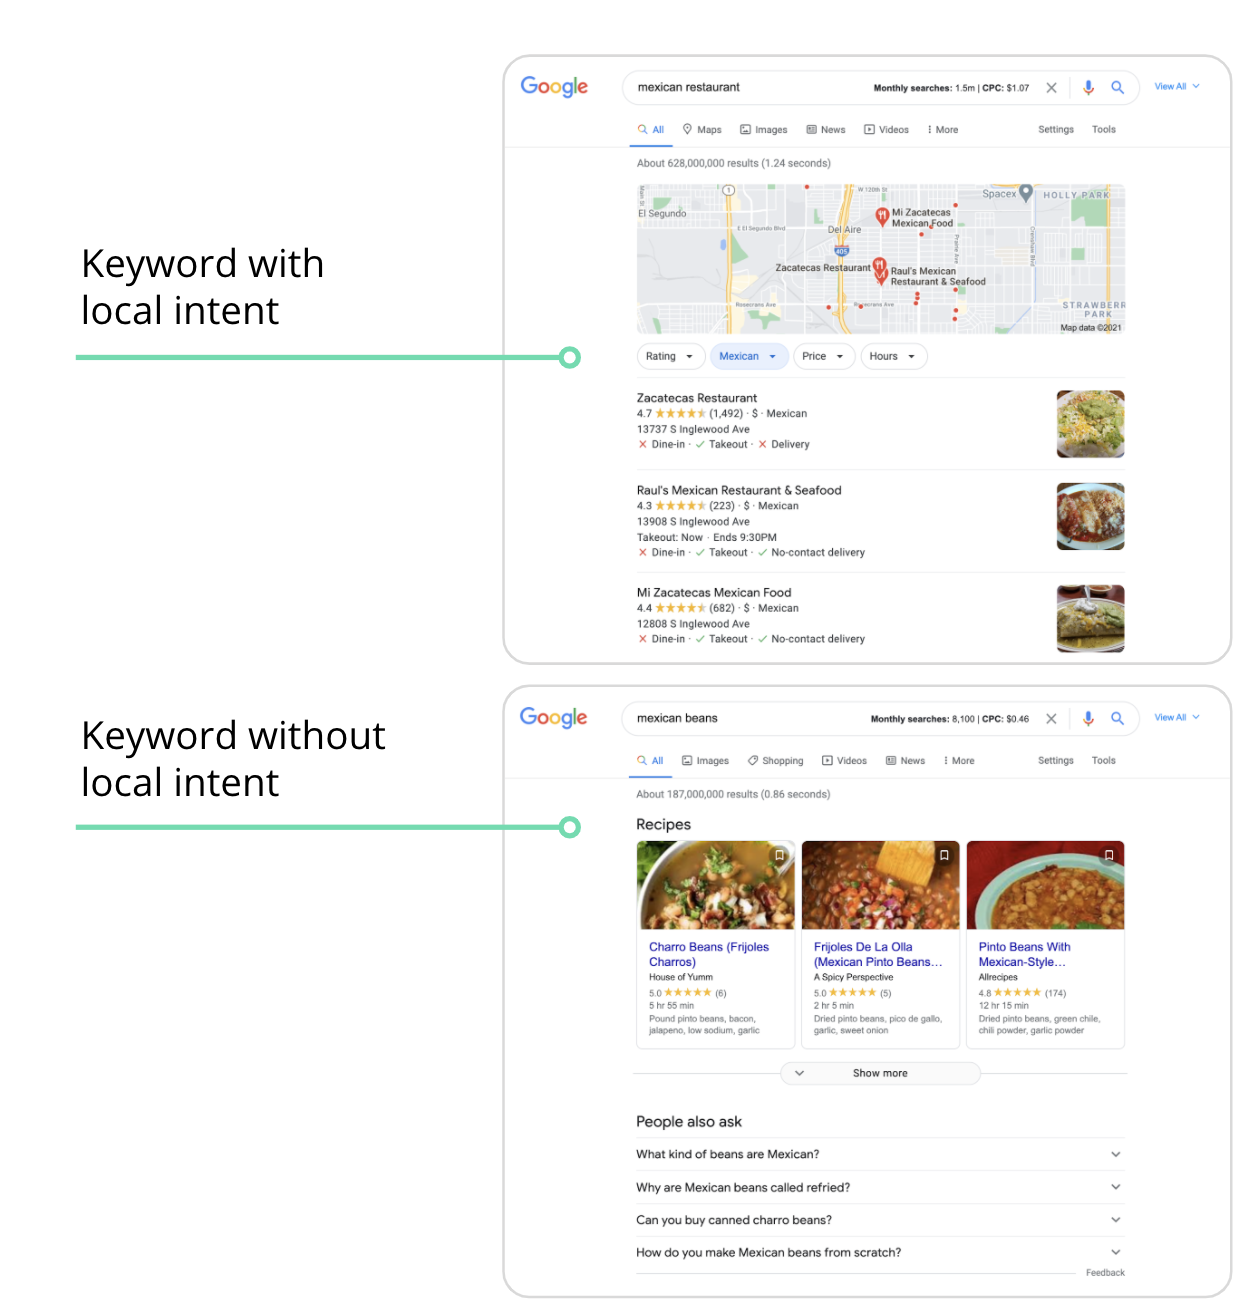 Keywords with local intent